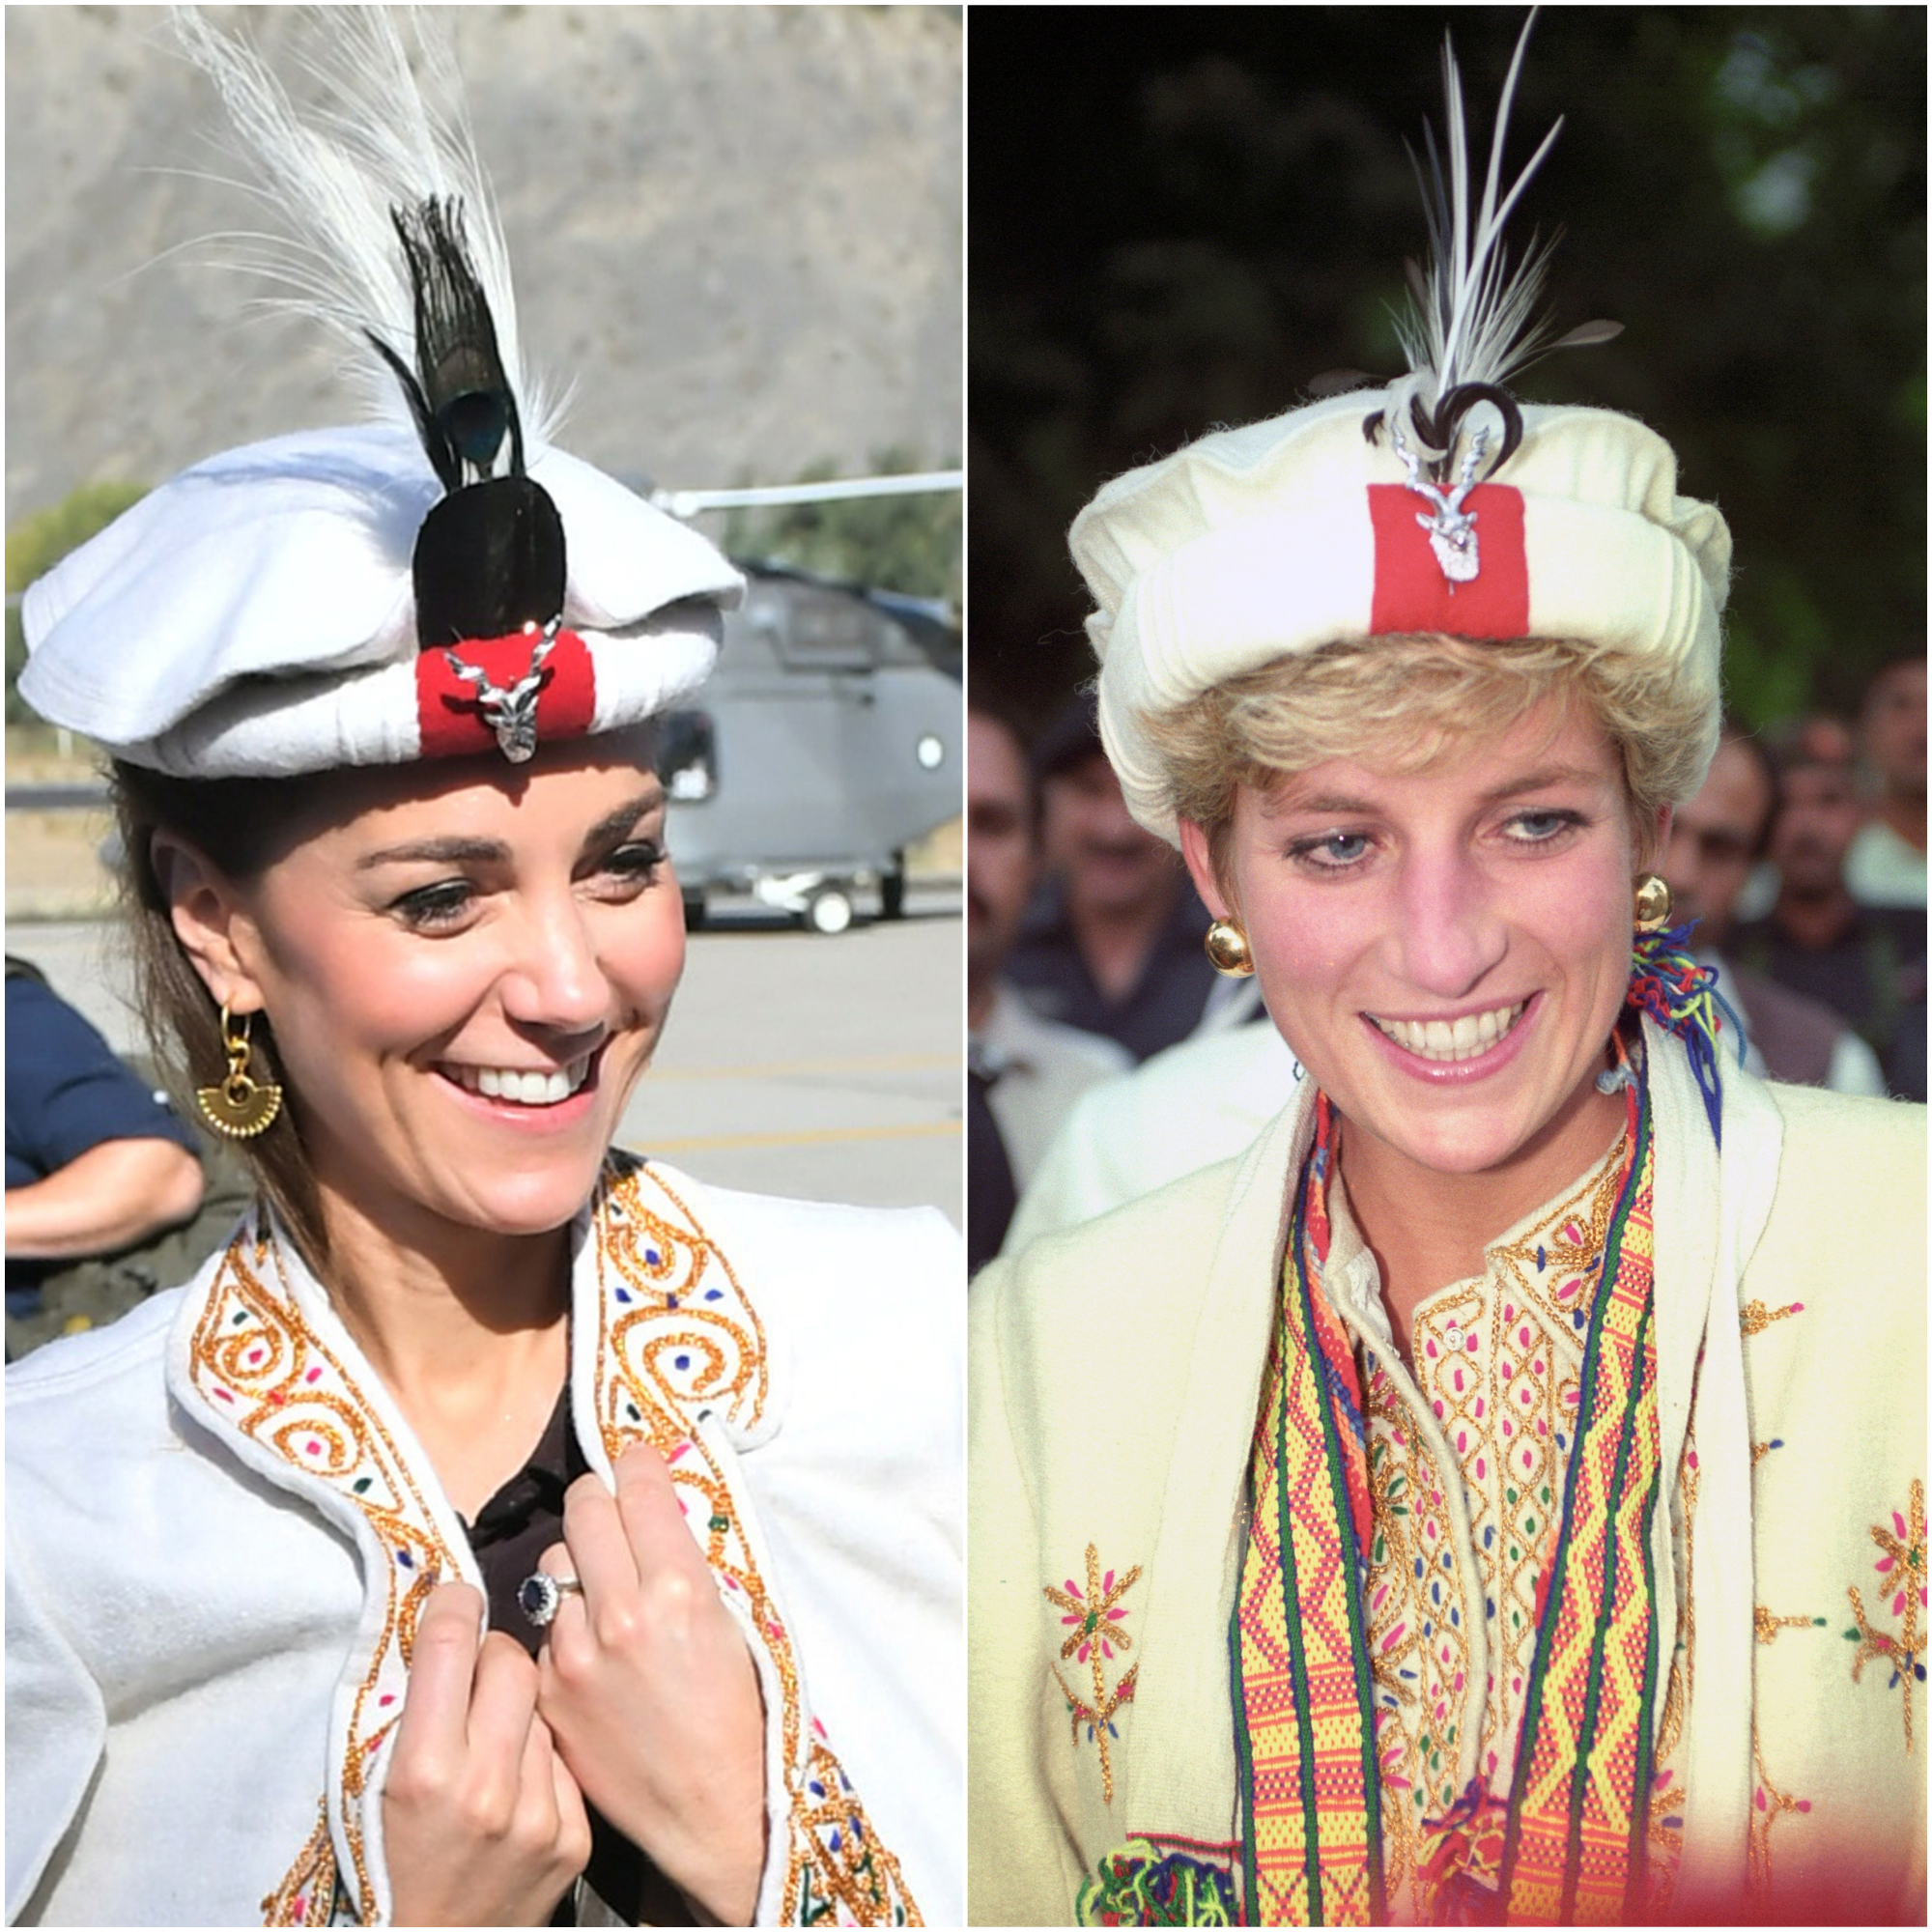 Kate and Diana, pictured in 1991, in similar hats during visits to Chitral (Sam Husssein/Martin Keene/PA)